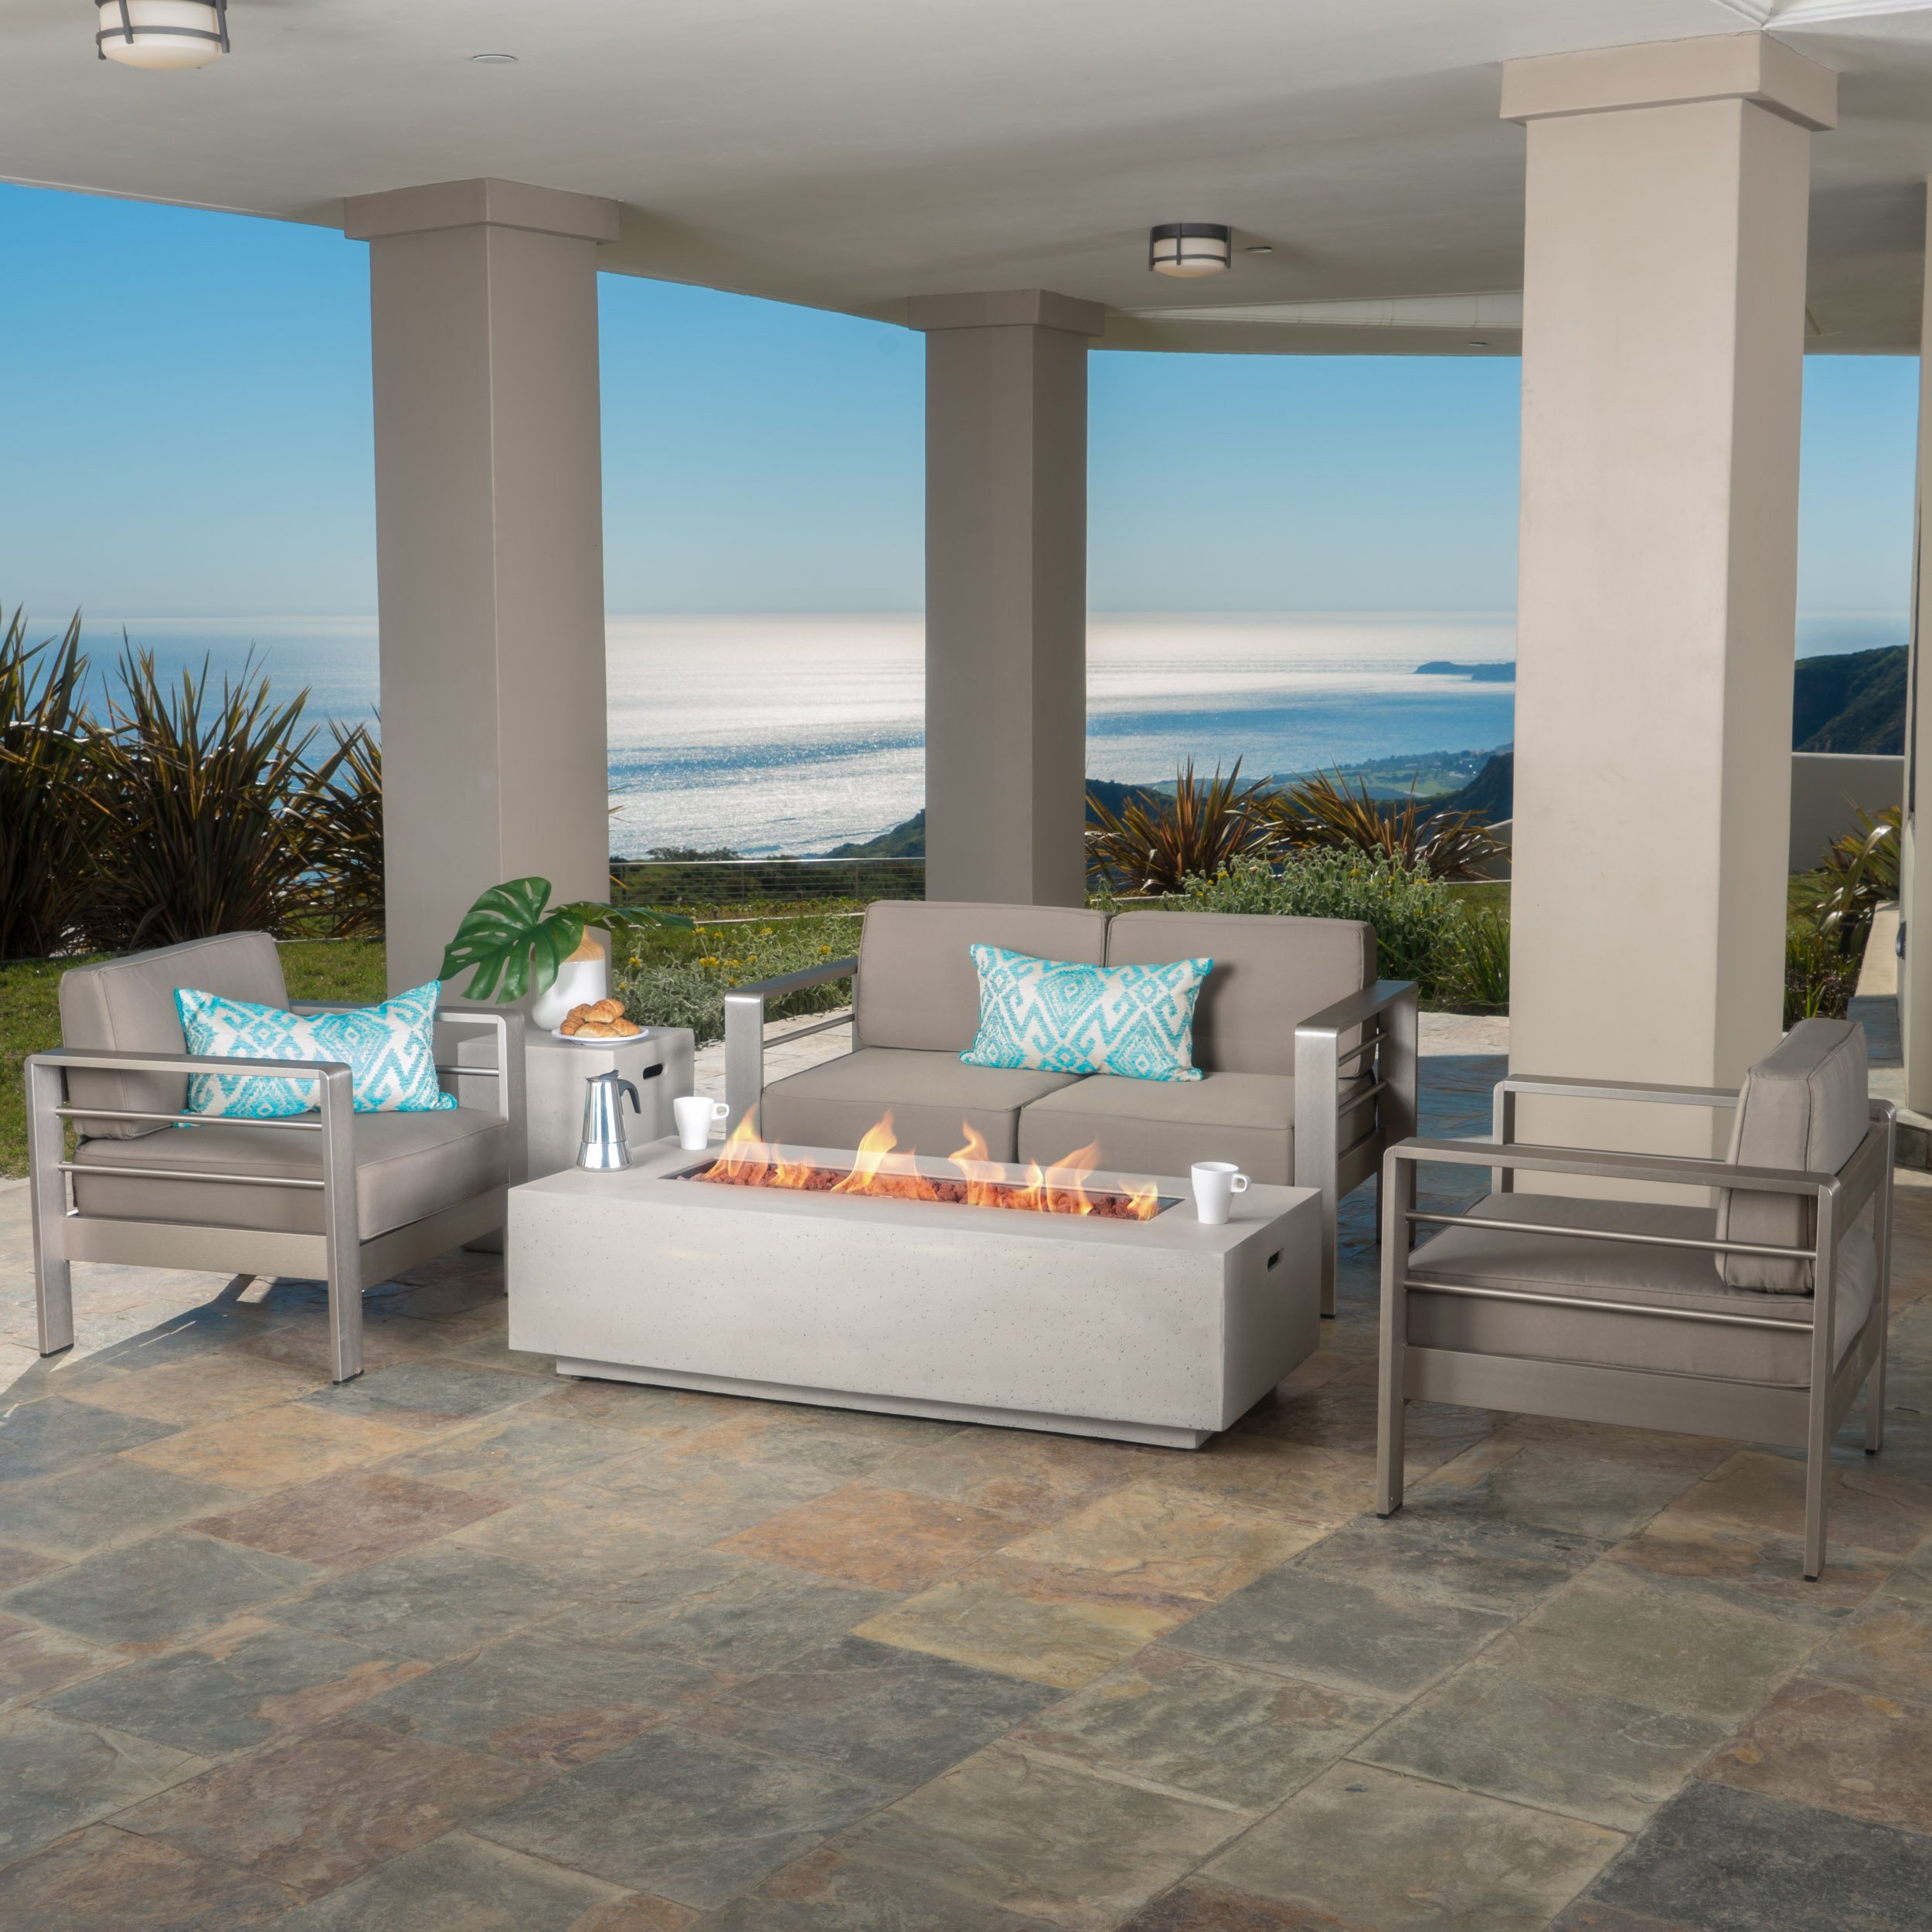 Crested Bay Patio Furniture ~ Outdoor Aluminum Sectional Sofa Set with Light Grey Fire Table (Khaki with Light Grey Fire Table) by GDF Studio